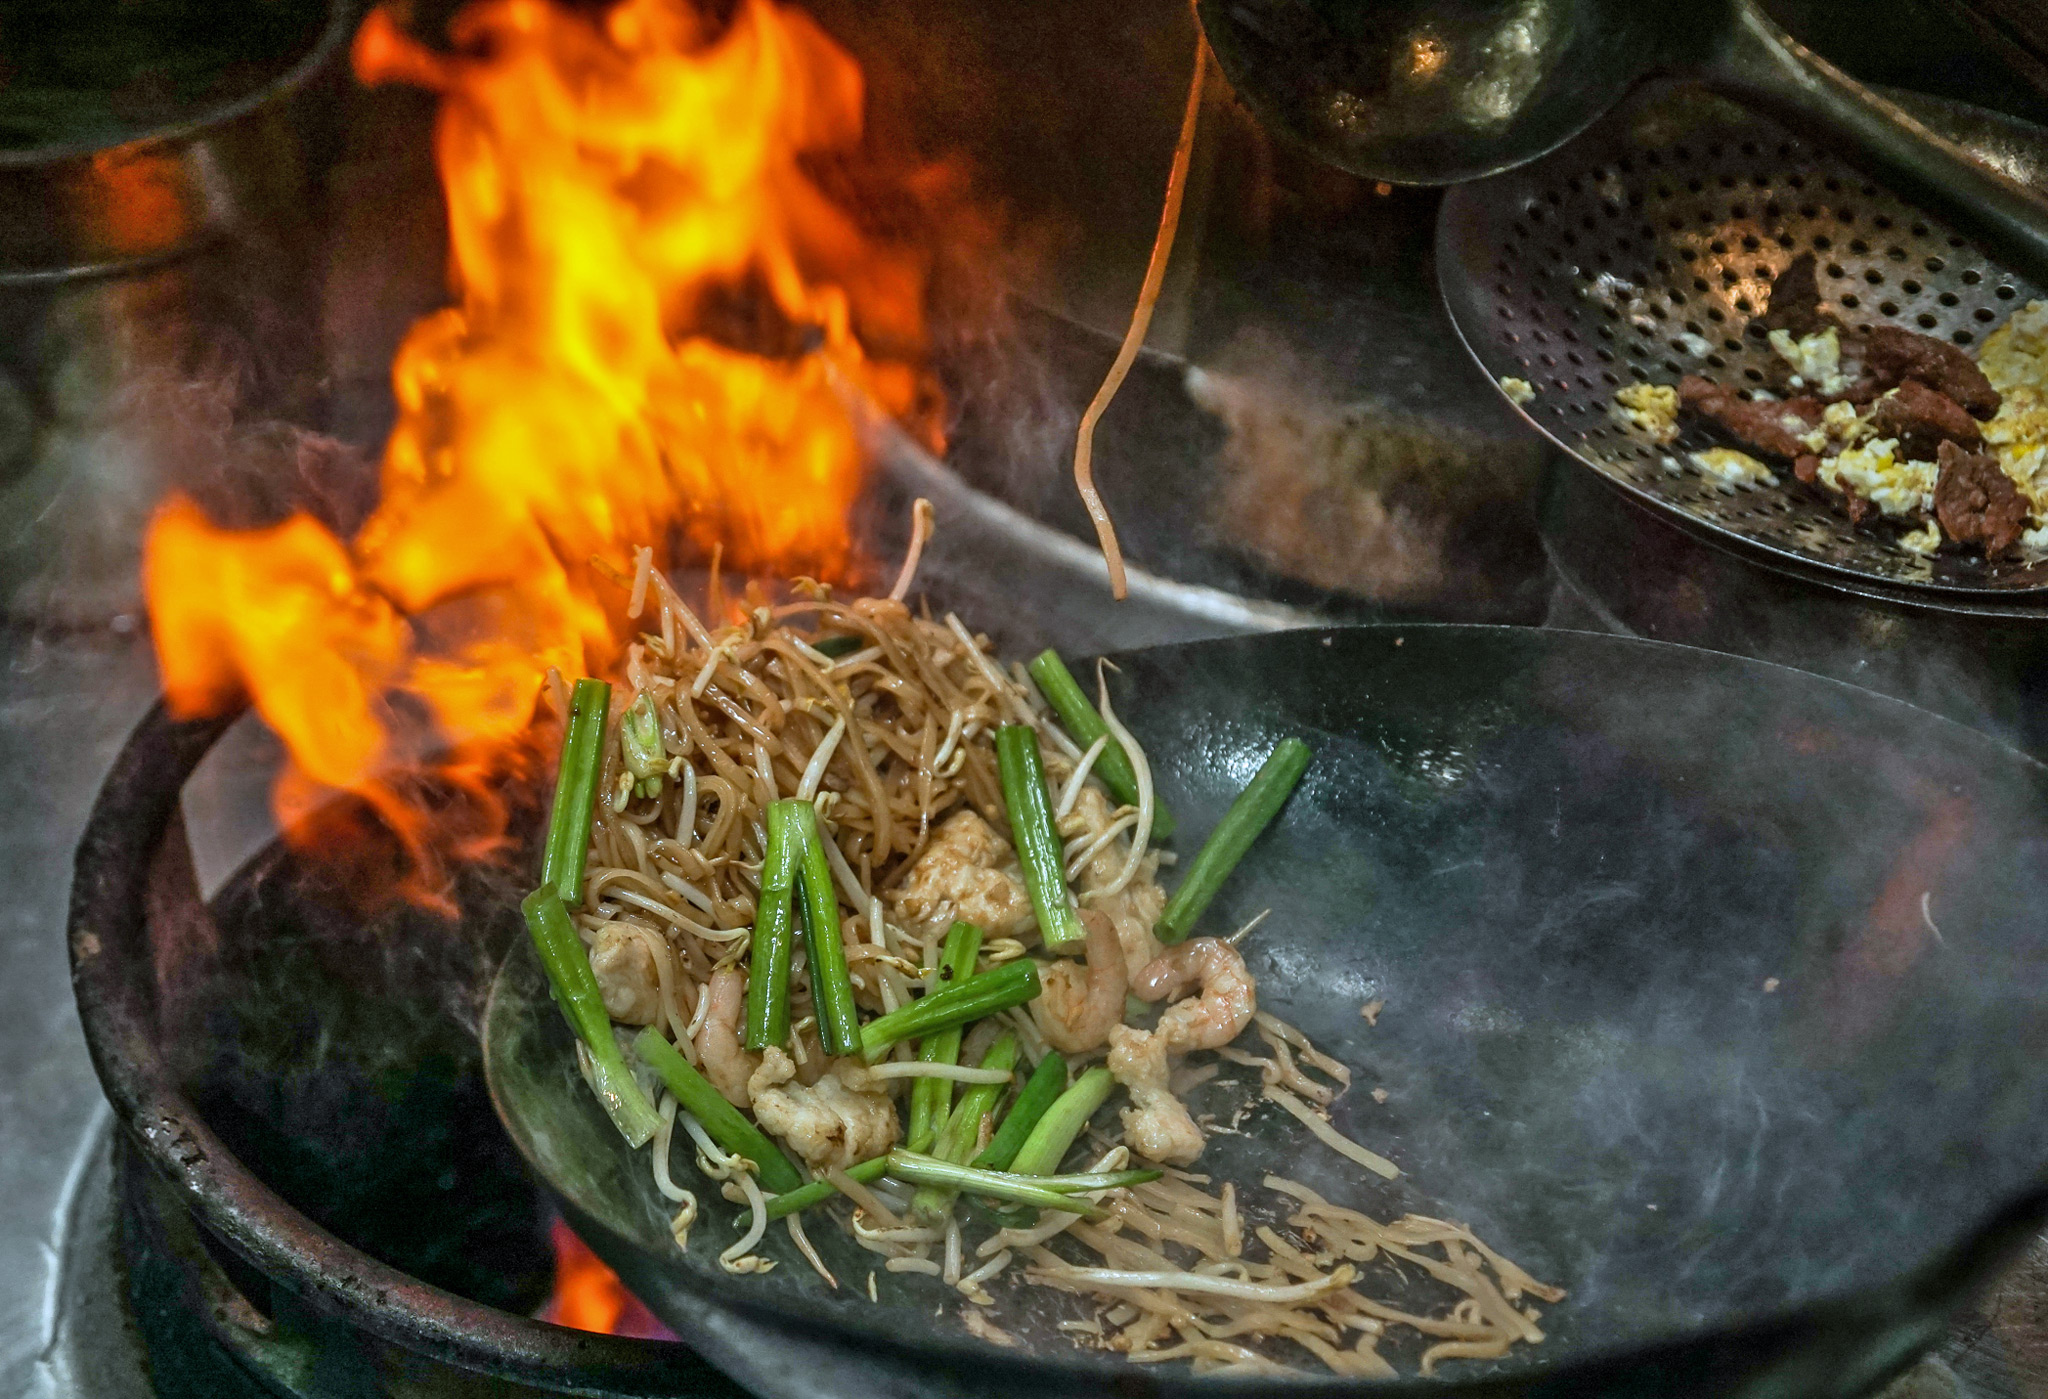 Woks Cook at 800°- 900°